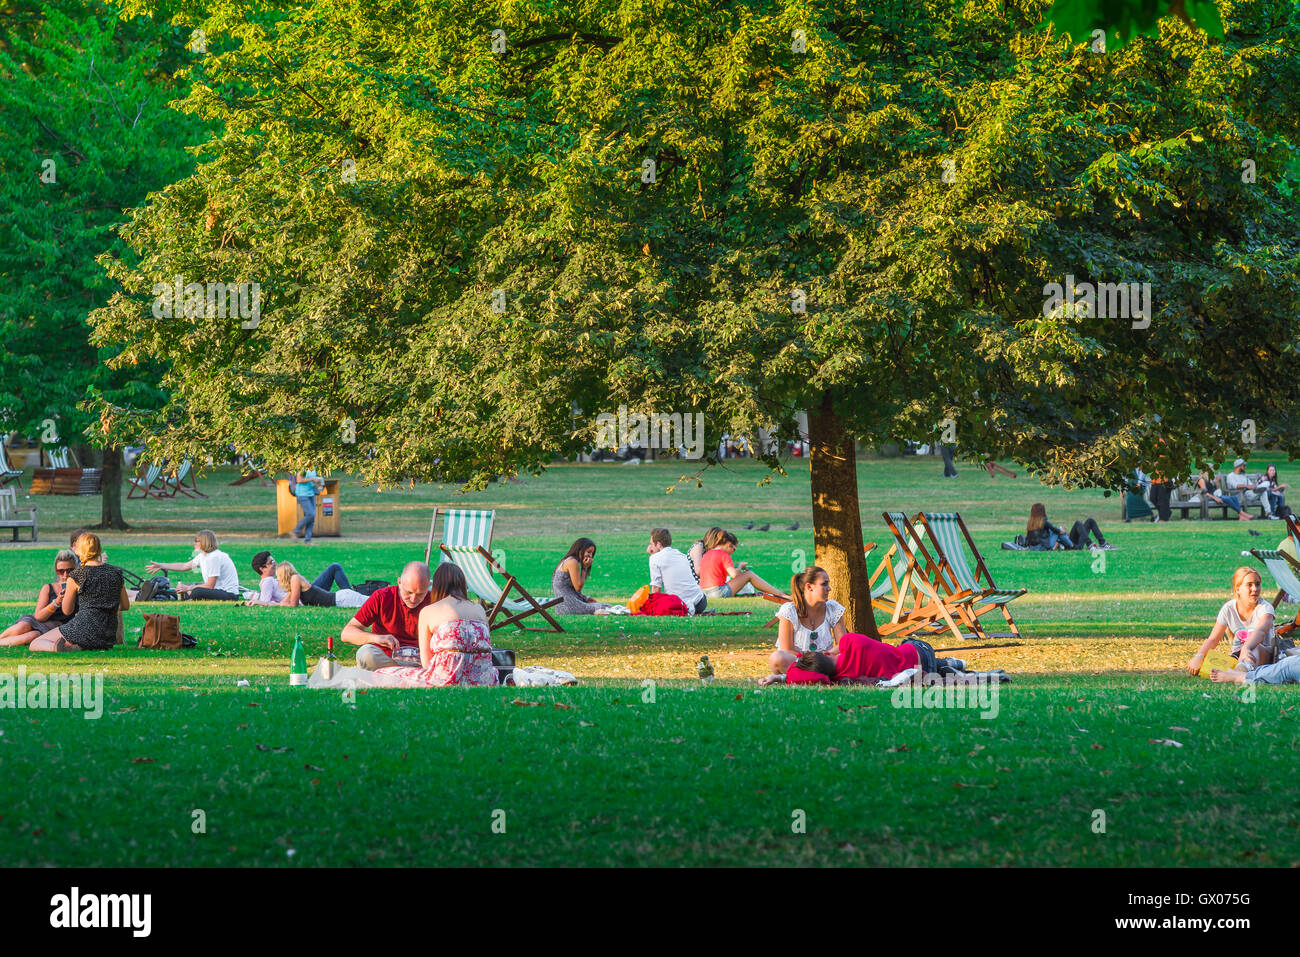 London park summer, in St James's Park, London, couples dine,relax and socialise in the light cast by the setting - Stock Image